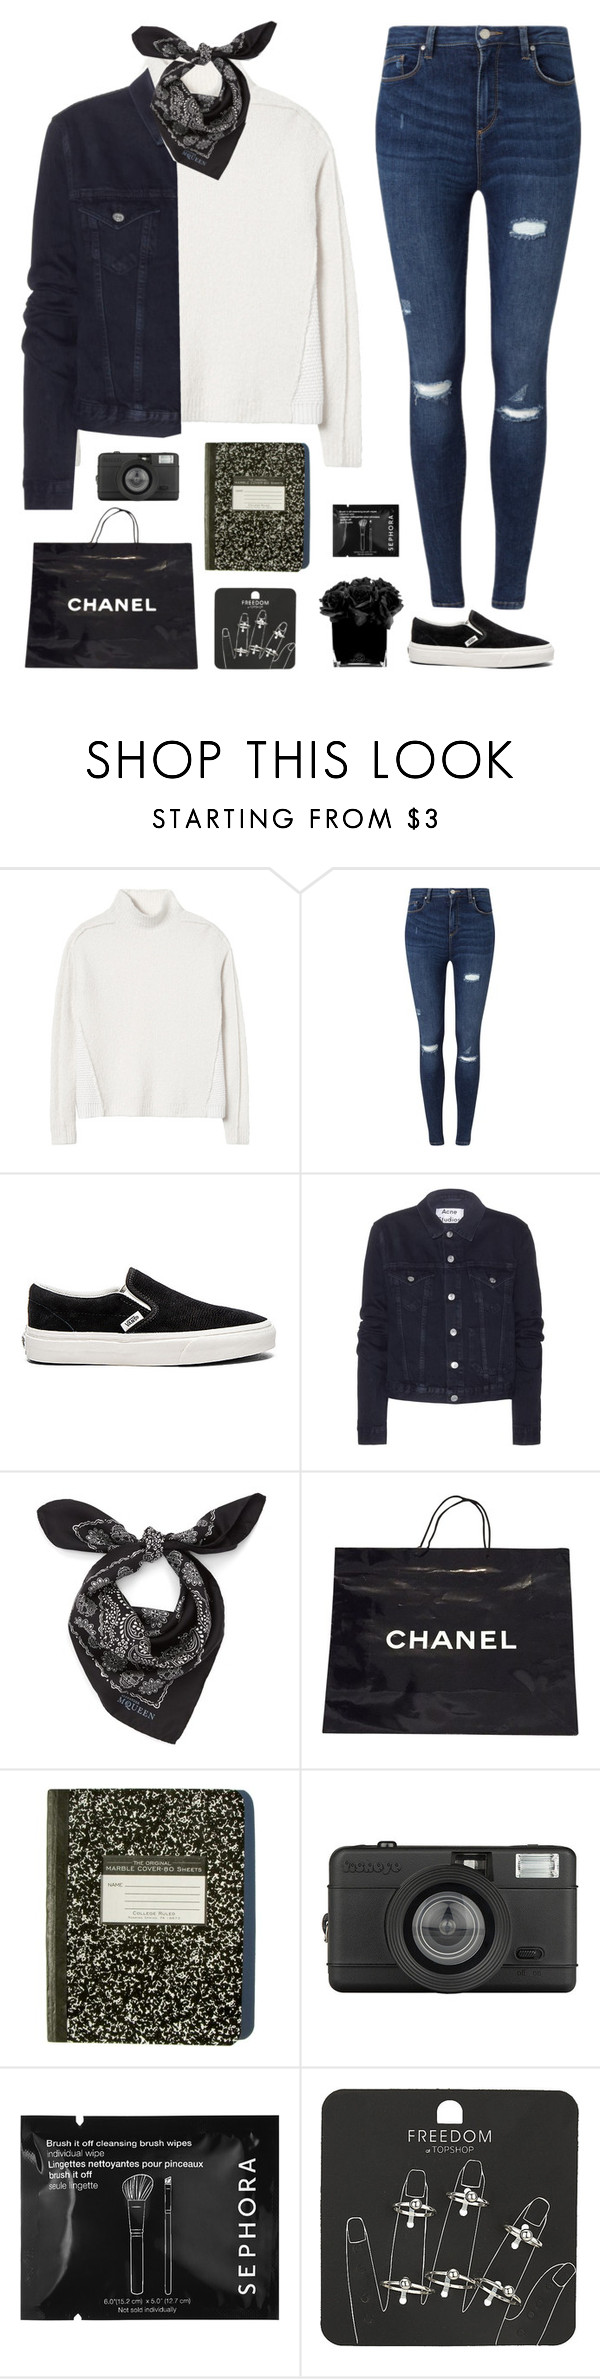 """""""Black and white"""" by genesis129 ❤ liked on Polyvore featuring Rebecca Taylor, Miss Selfridge, Vans, Acne Studios, Alexander McQueen, Chanel, Lomography, Sephora Collection, Topshop and Hervé Gambs"""